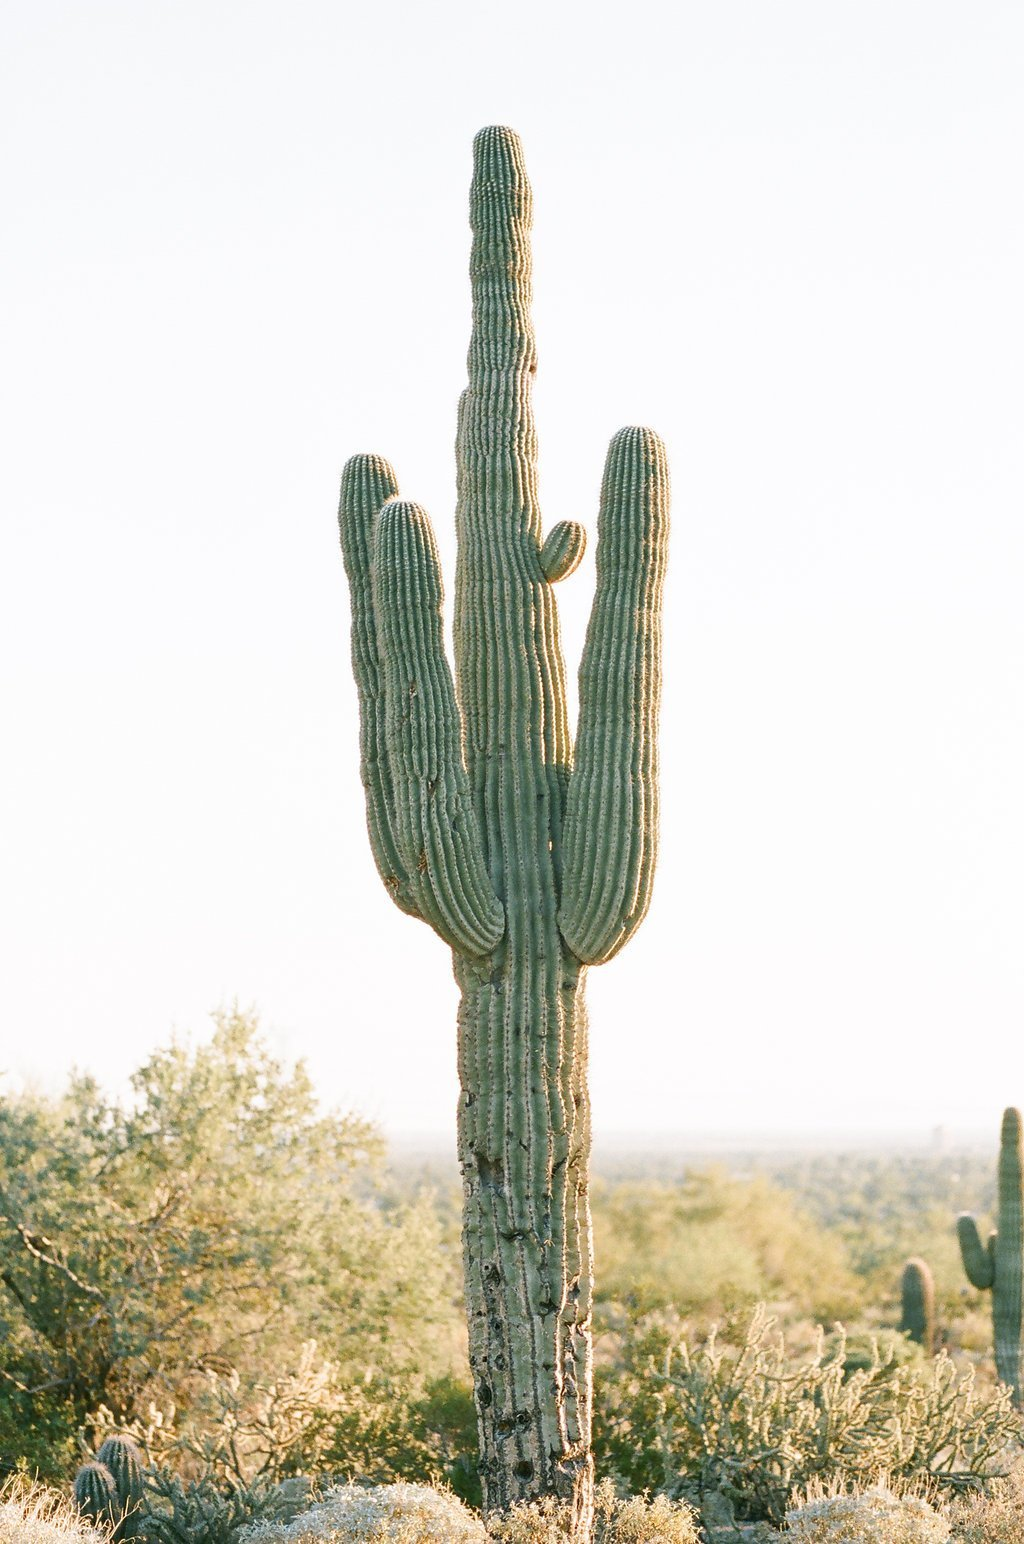 Large cactus plant in the dessert